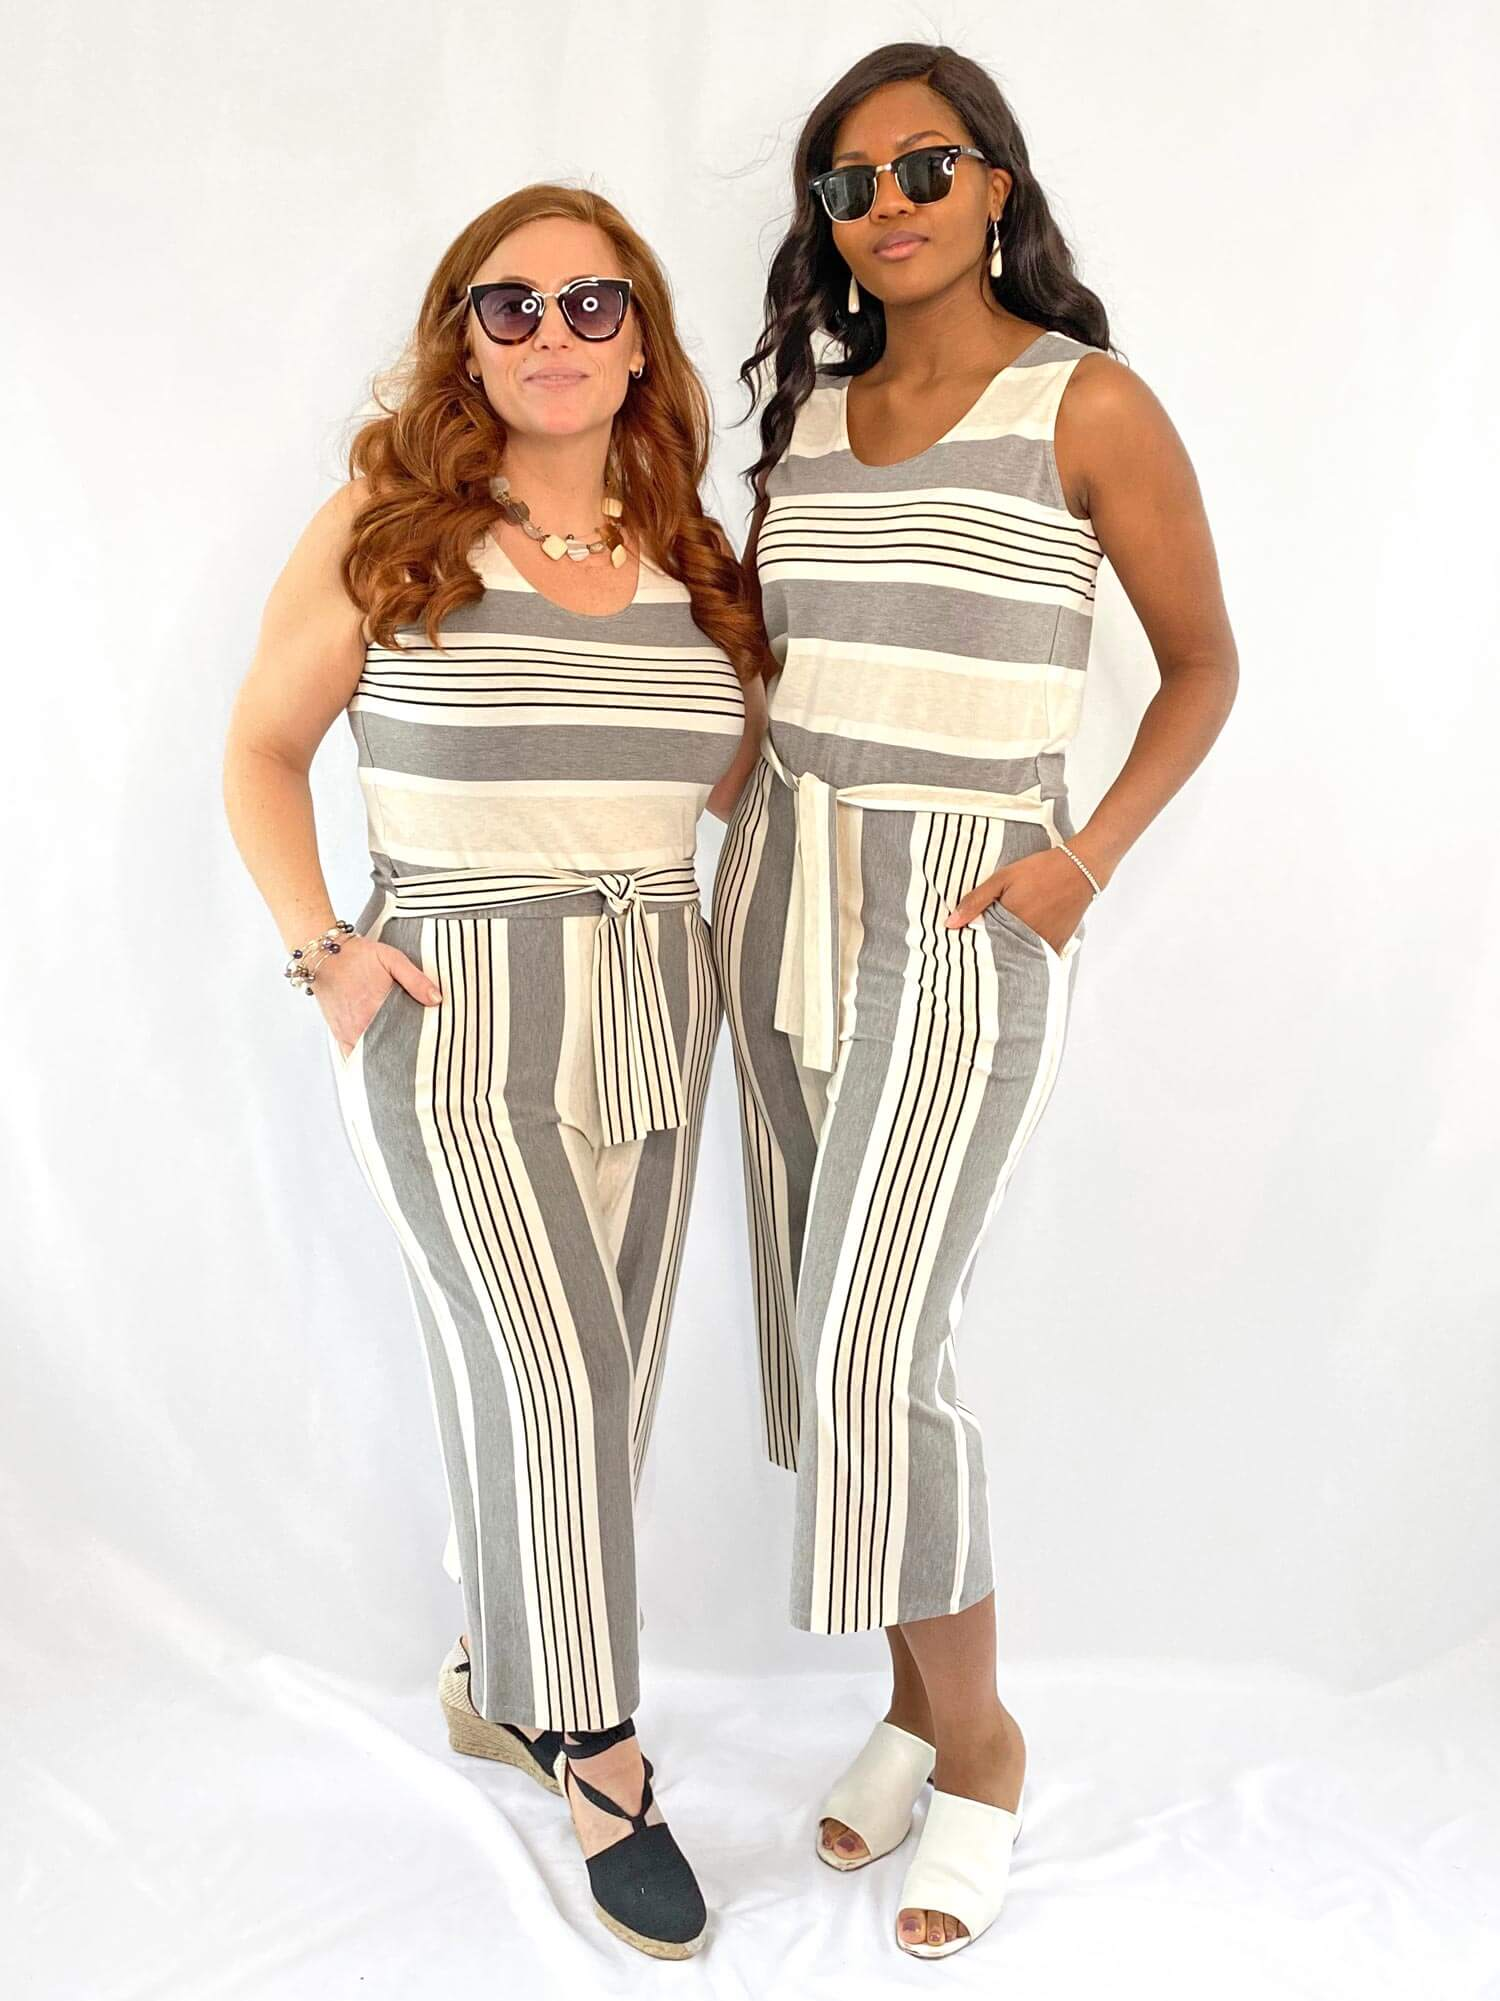 Two models wearing striped jumpsuits